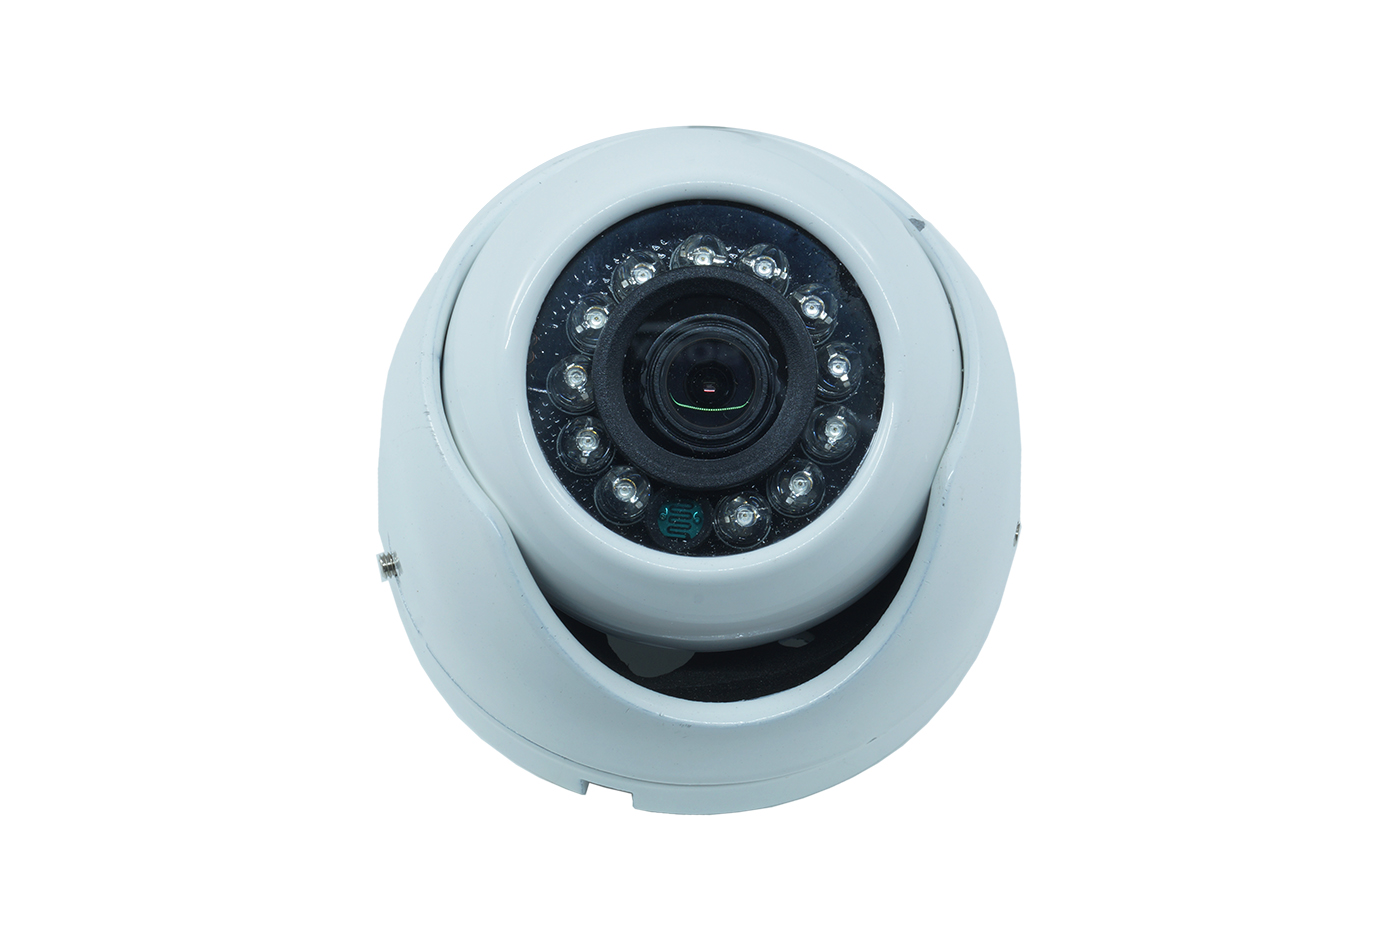 TELECAMERA VIDEOSORVEGLIANZA DOME CCD 12 LED 3.6 MM 1.3MP IR JT-2006A-12